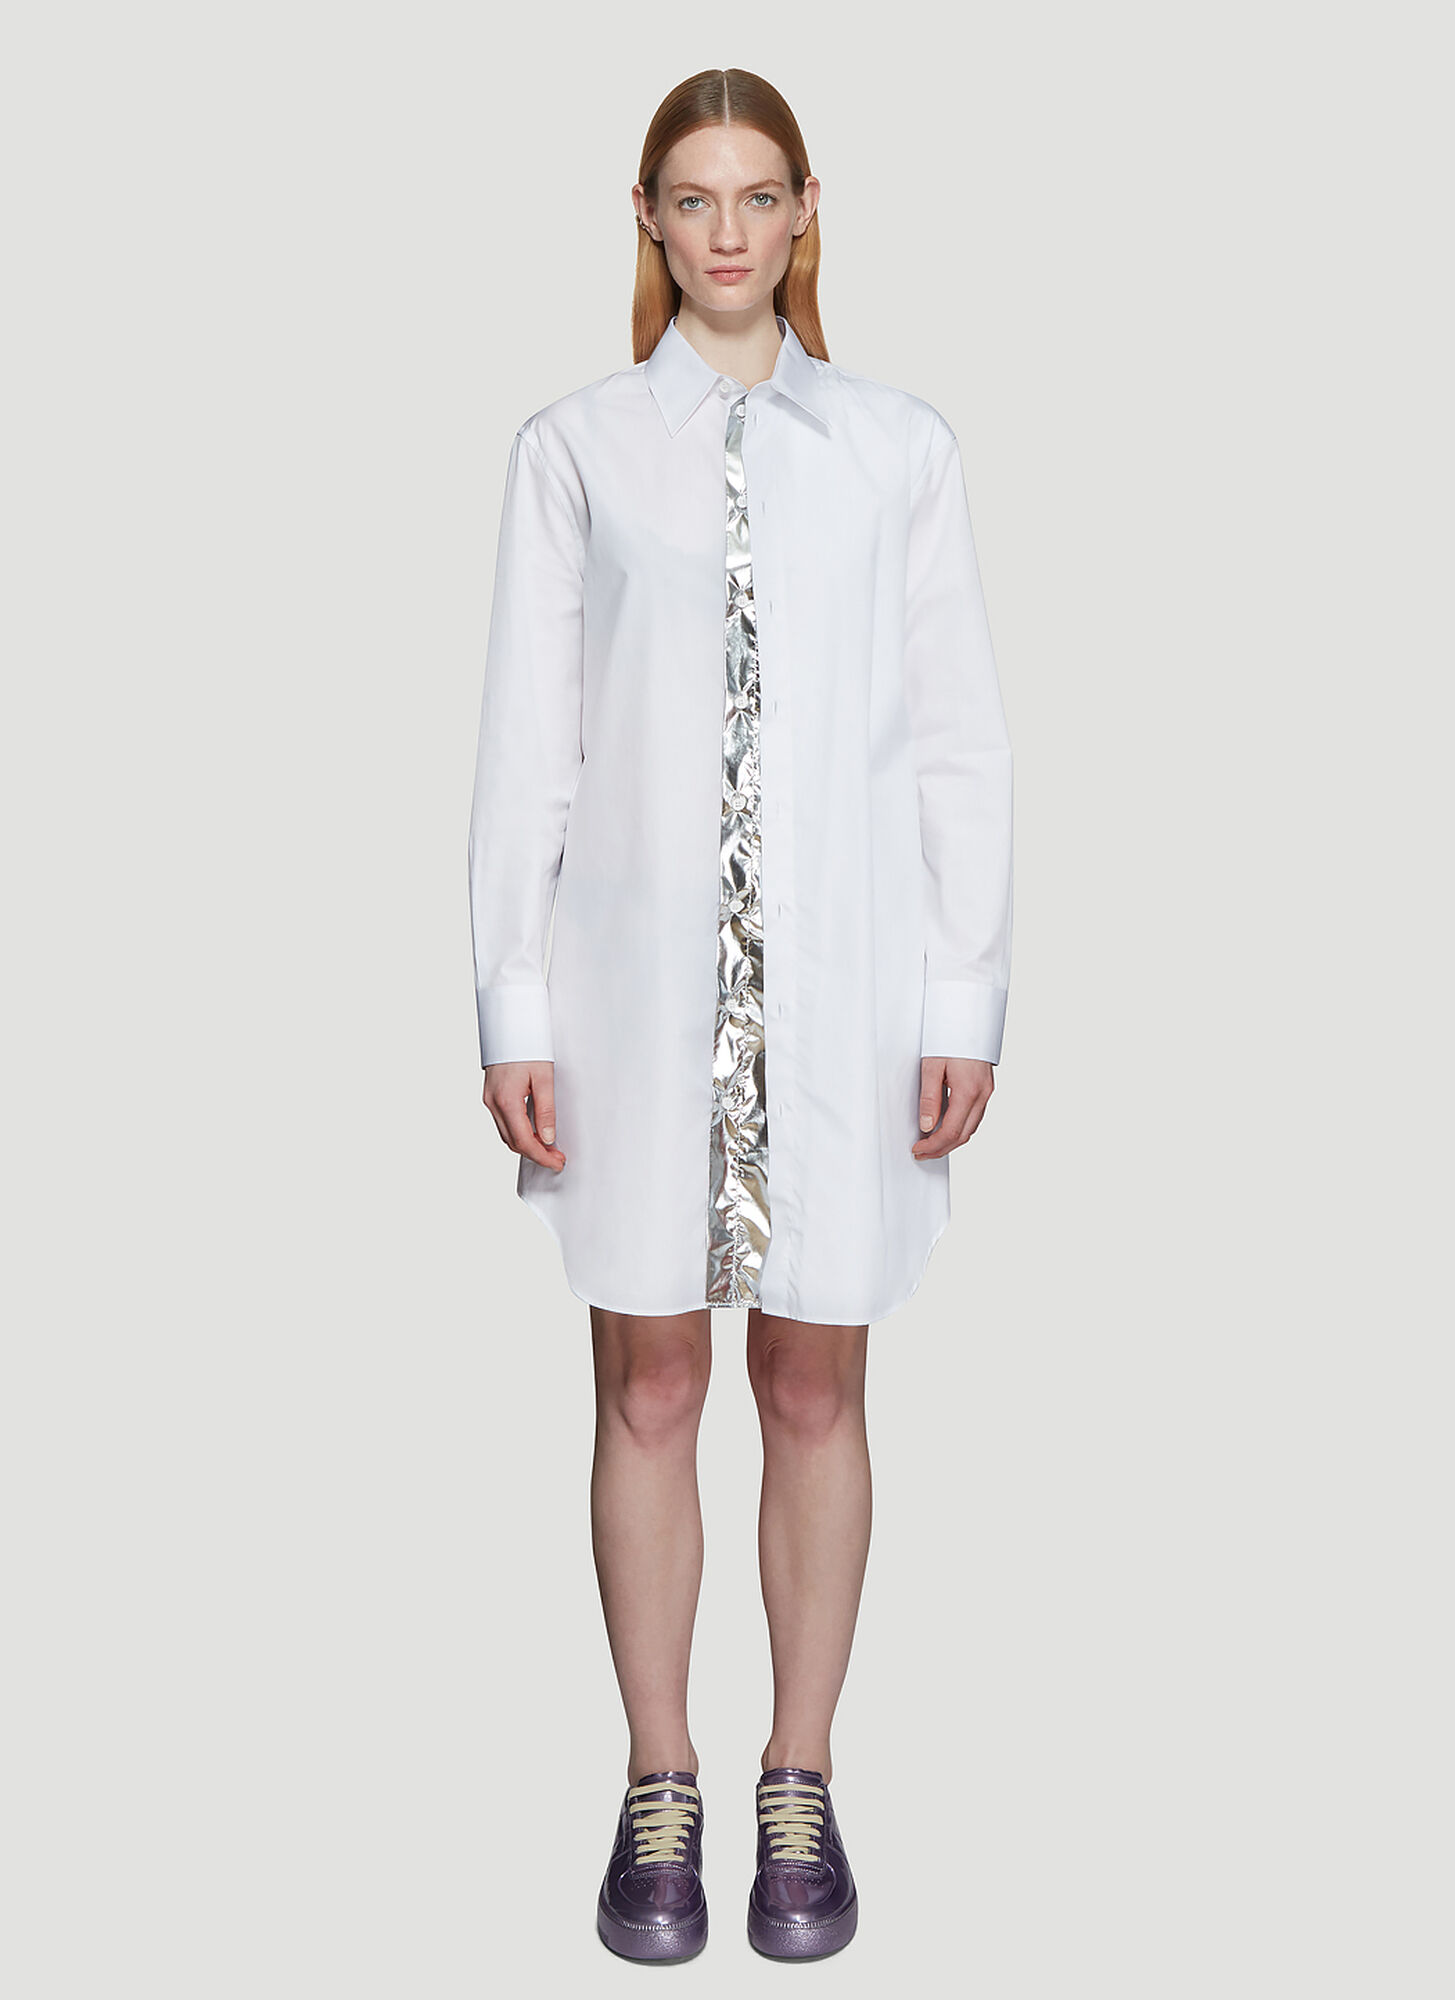 Maison Margiela Concealed Silver Foil Panel Shirt in White